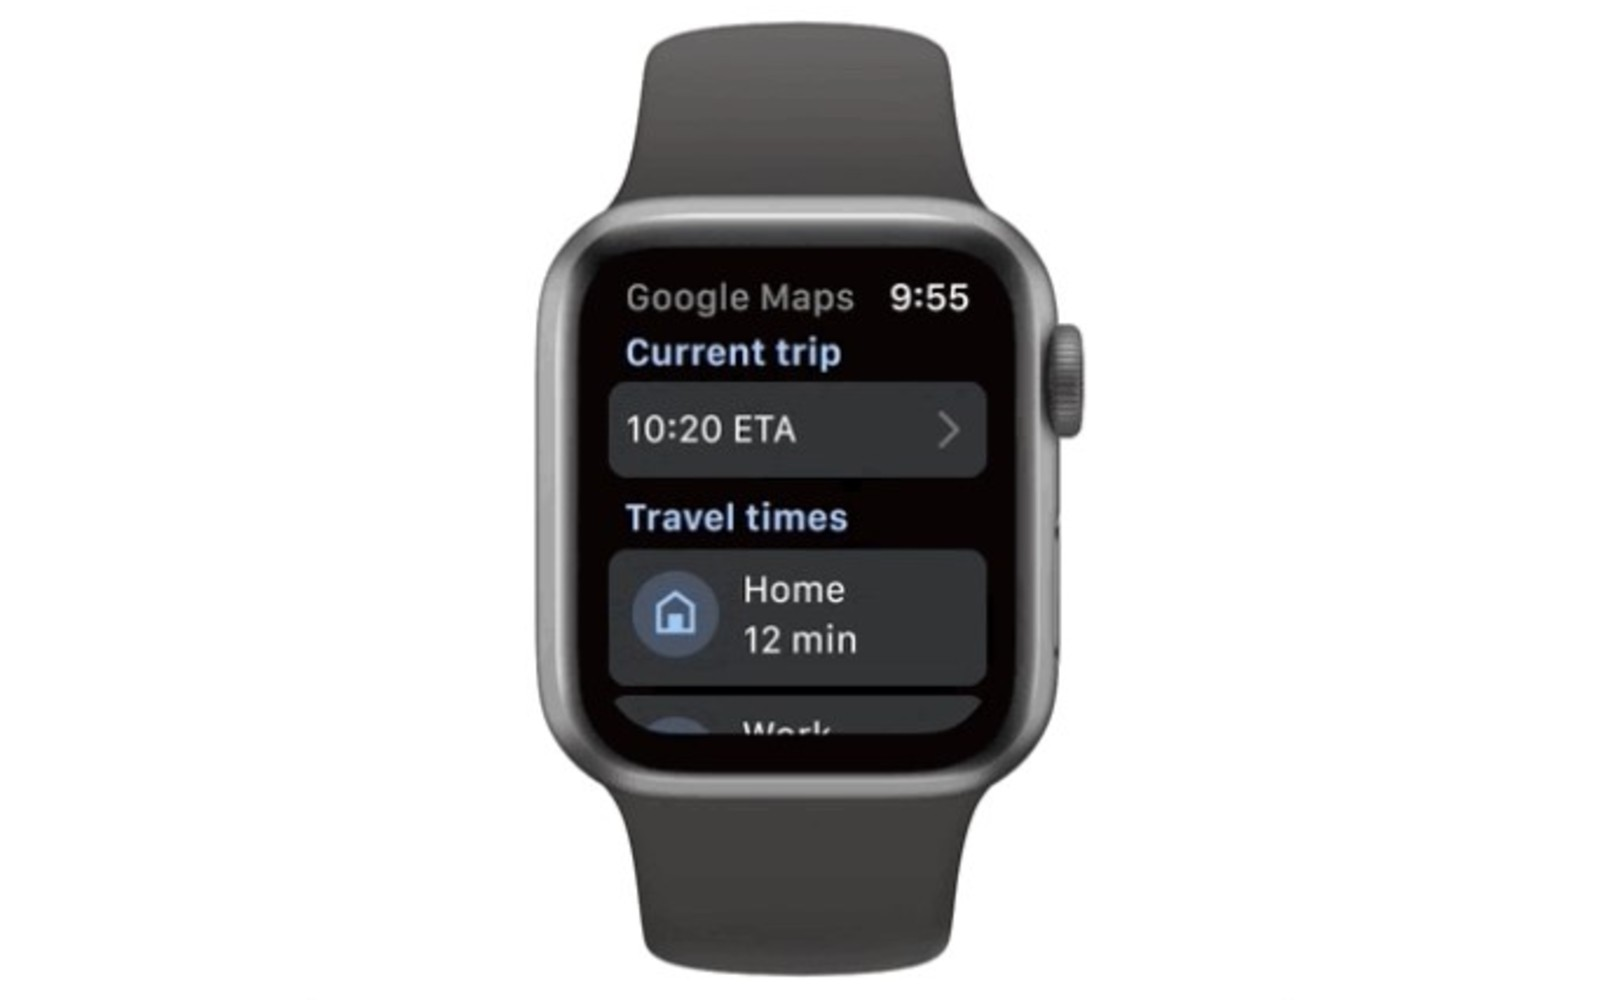 Google Maps is finally back on Apple Watch